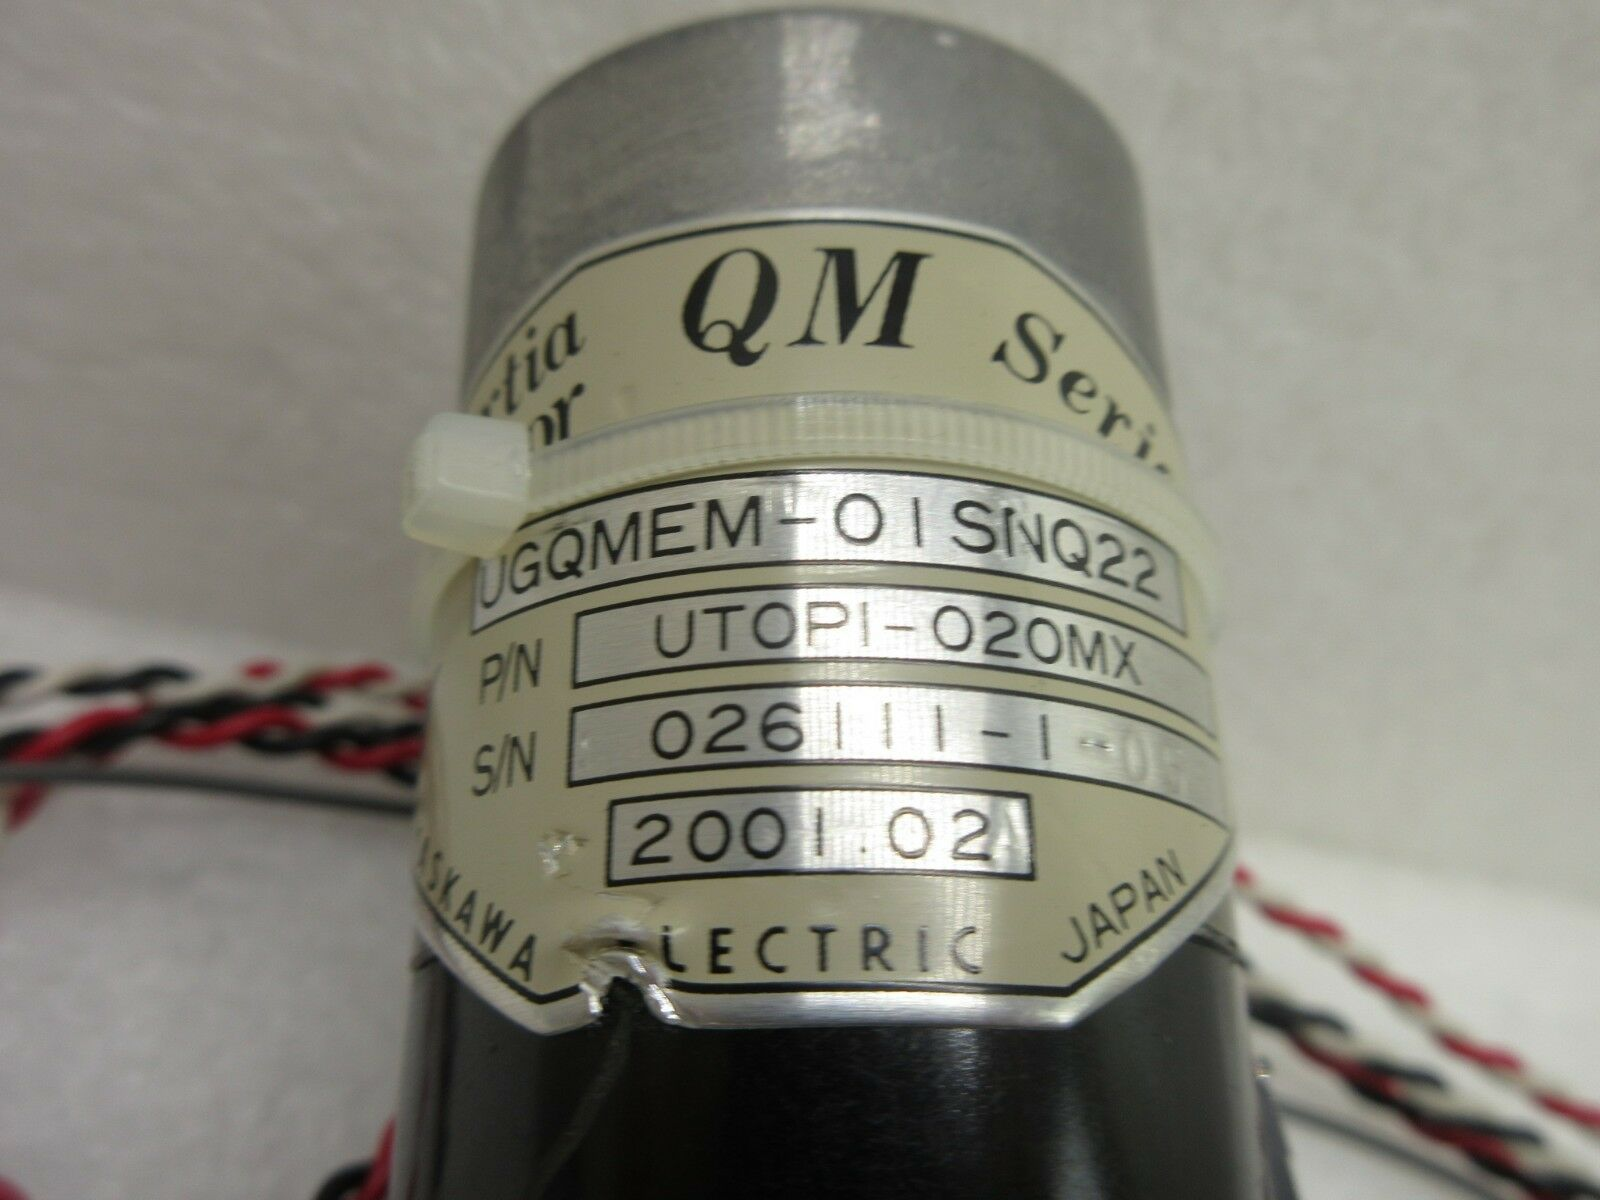 Yaskawa Electric UTOPI-020MX Minertia Motor QM Series Nikon NSR-S204B Used